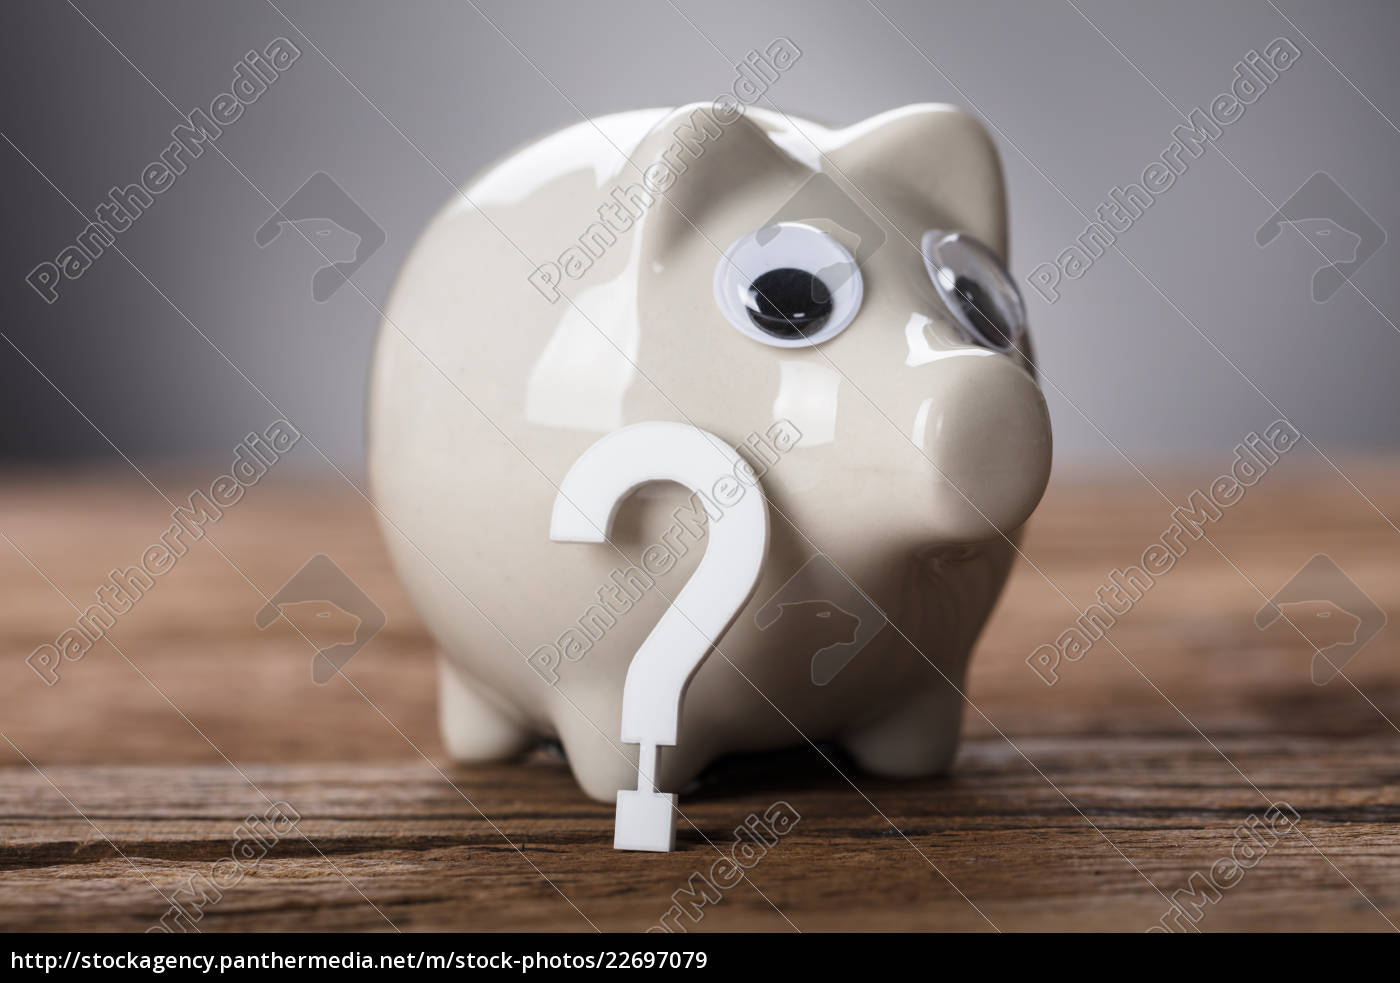 question, mark, sign, and, piggy, bank - 22697079